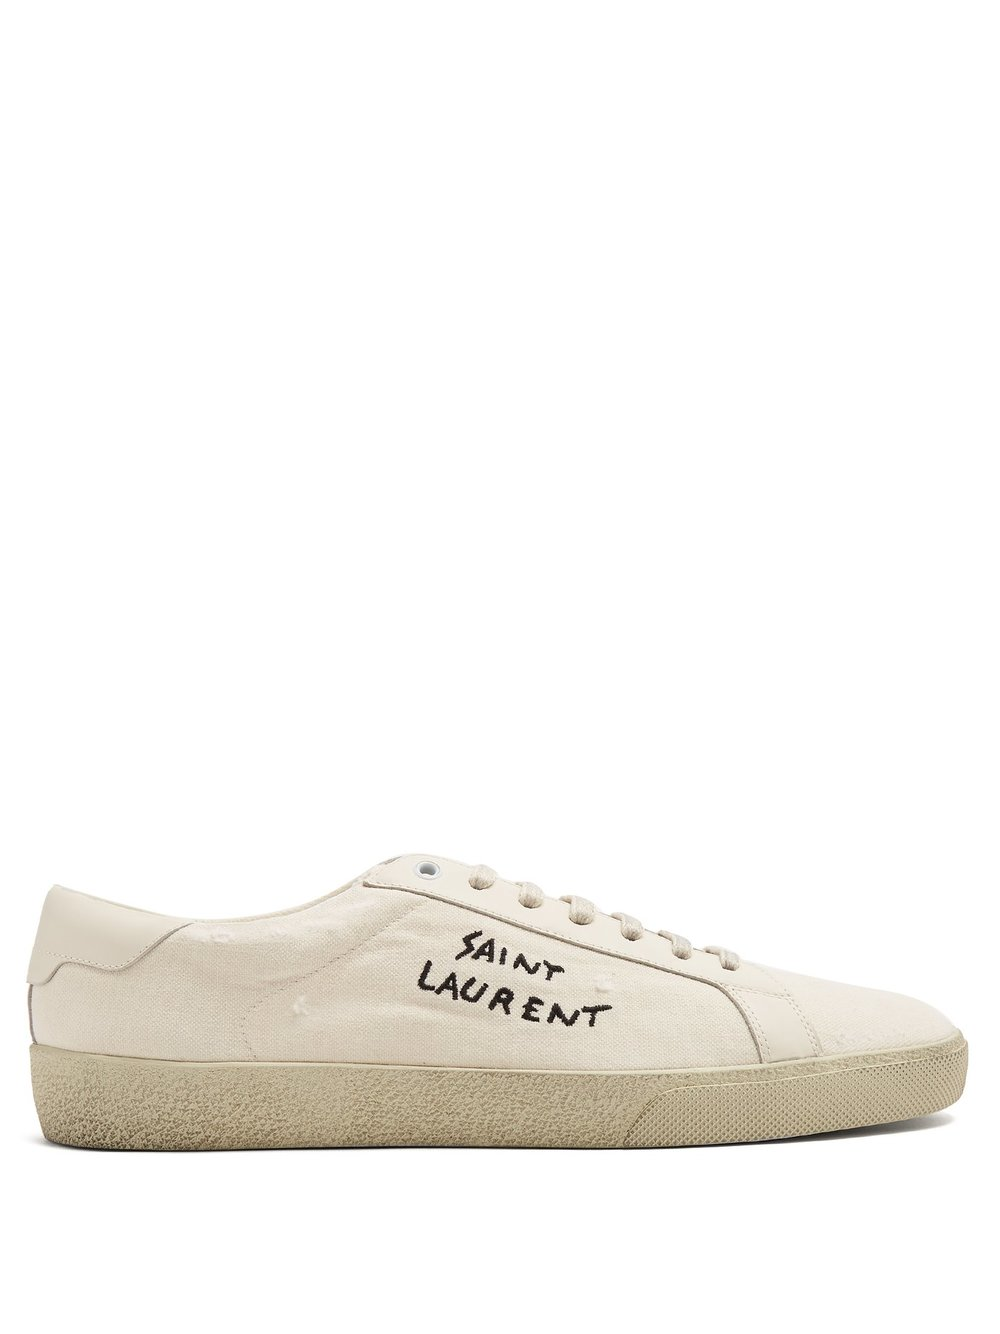 Saint Laurent sneakers at Matches Fashion  - £425